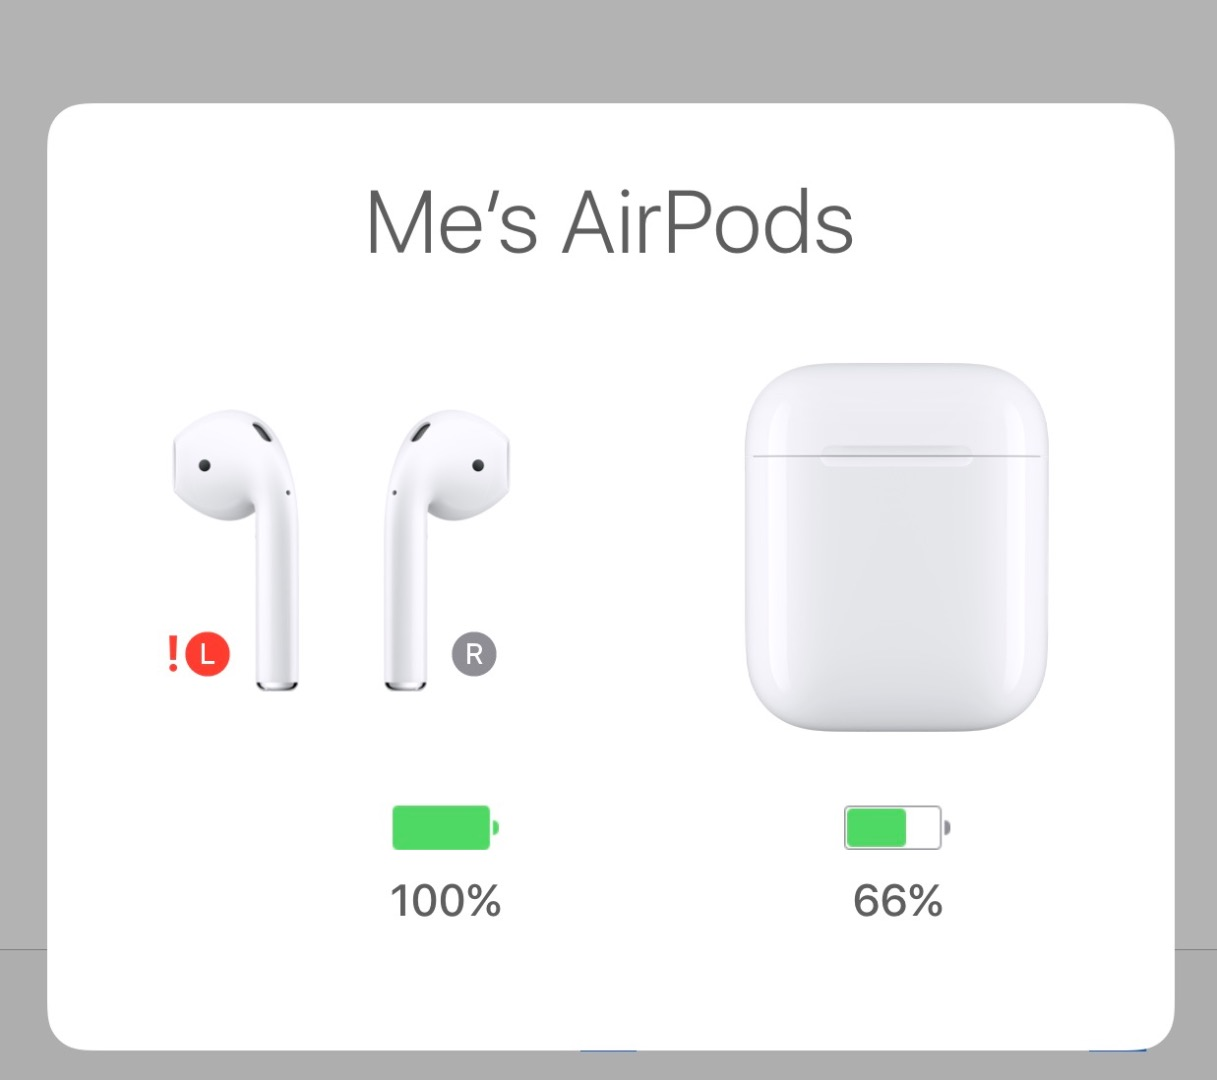 Red Exclamation Point On Airpods Apple Community